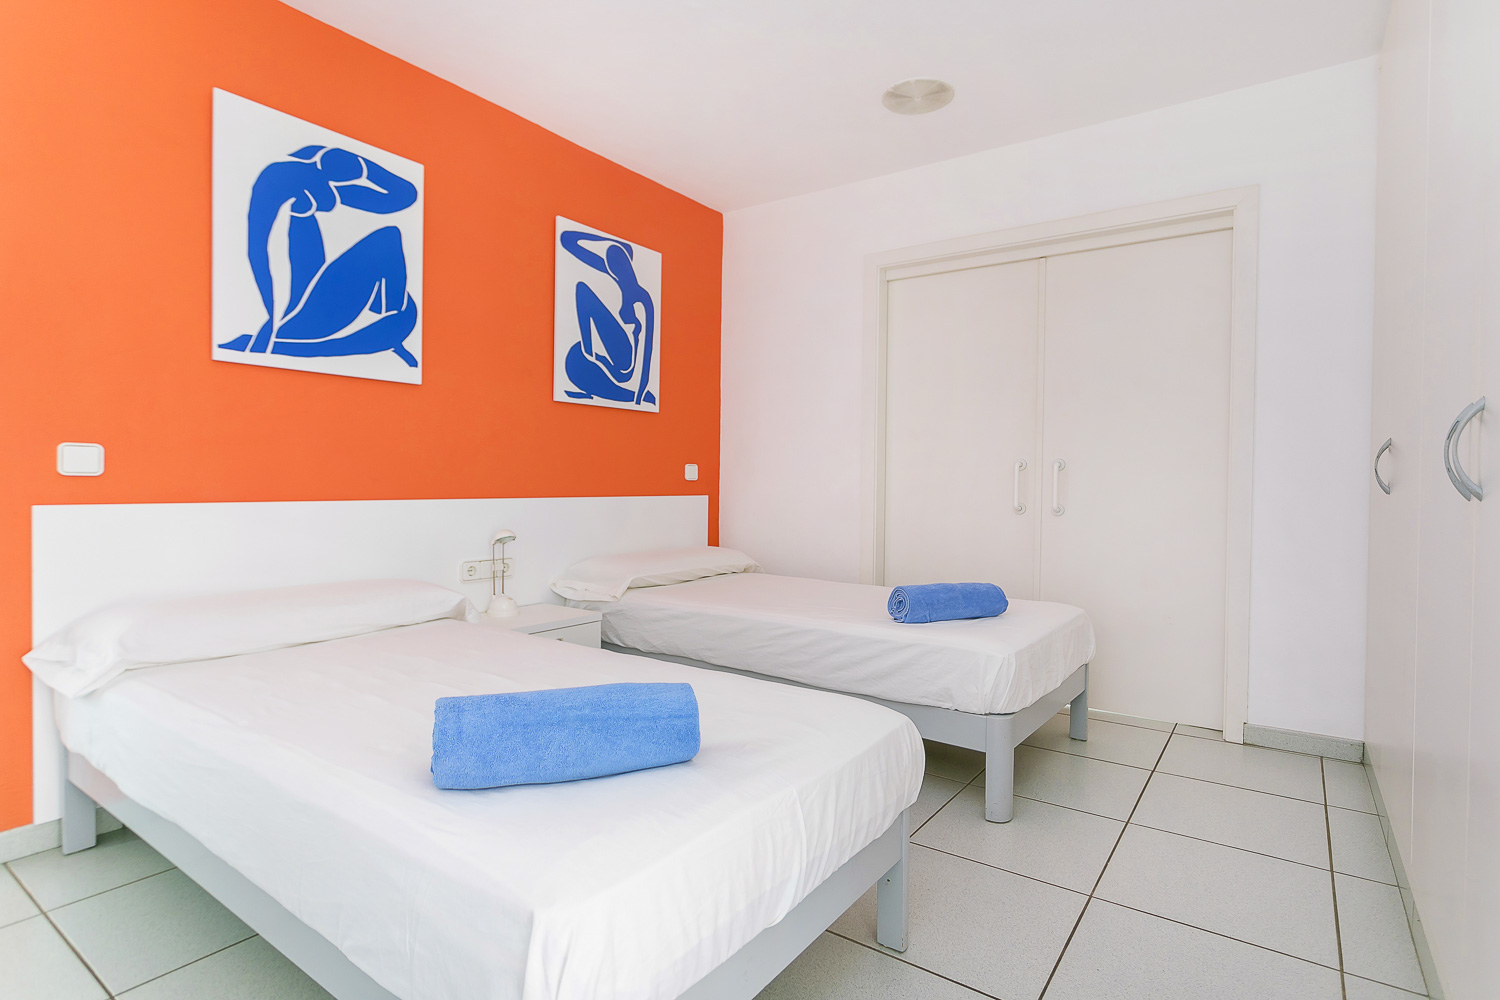 Double room with separate beds ibiza house rental